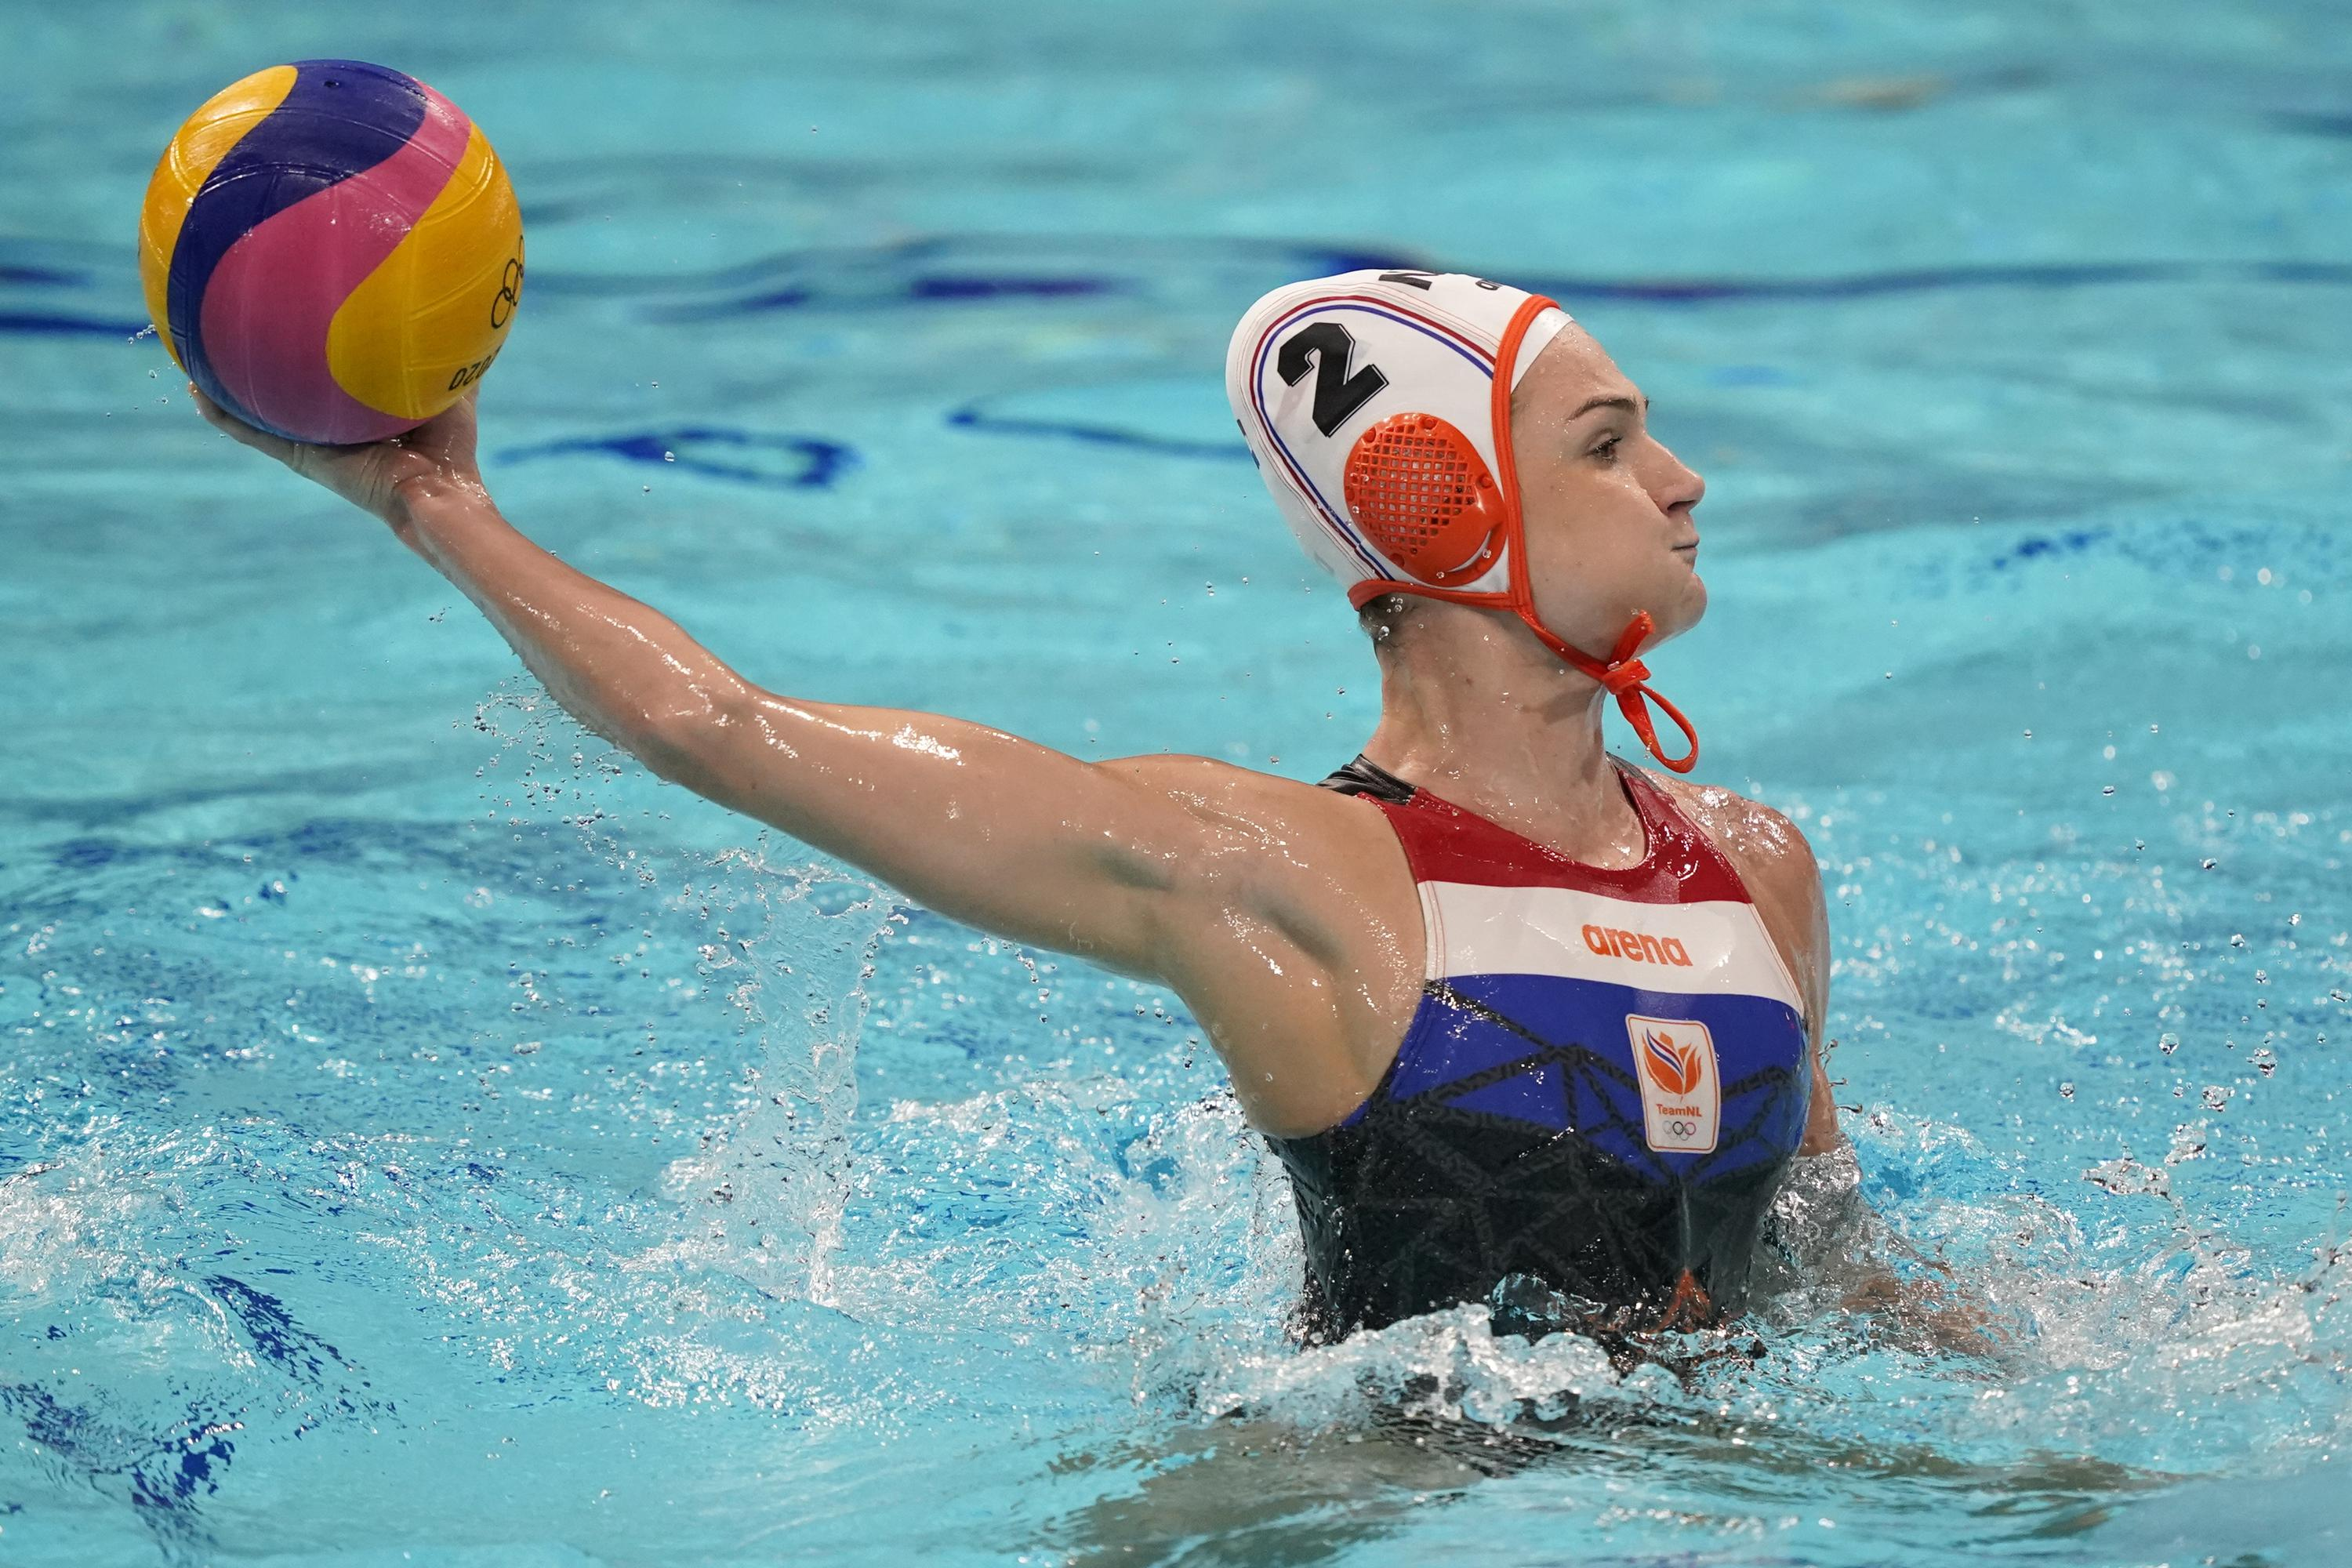 There's a strong Pac-12 presence in water polo at the Tokyo Olympics